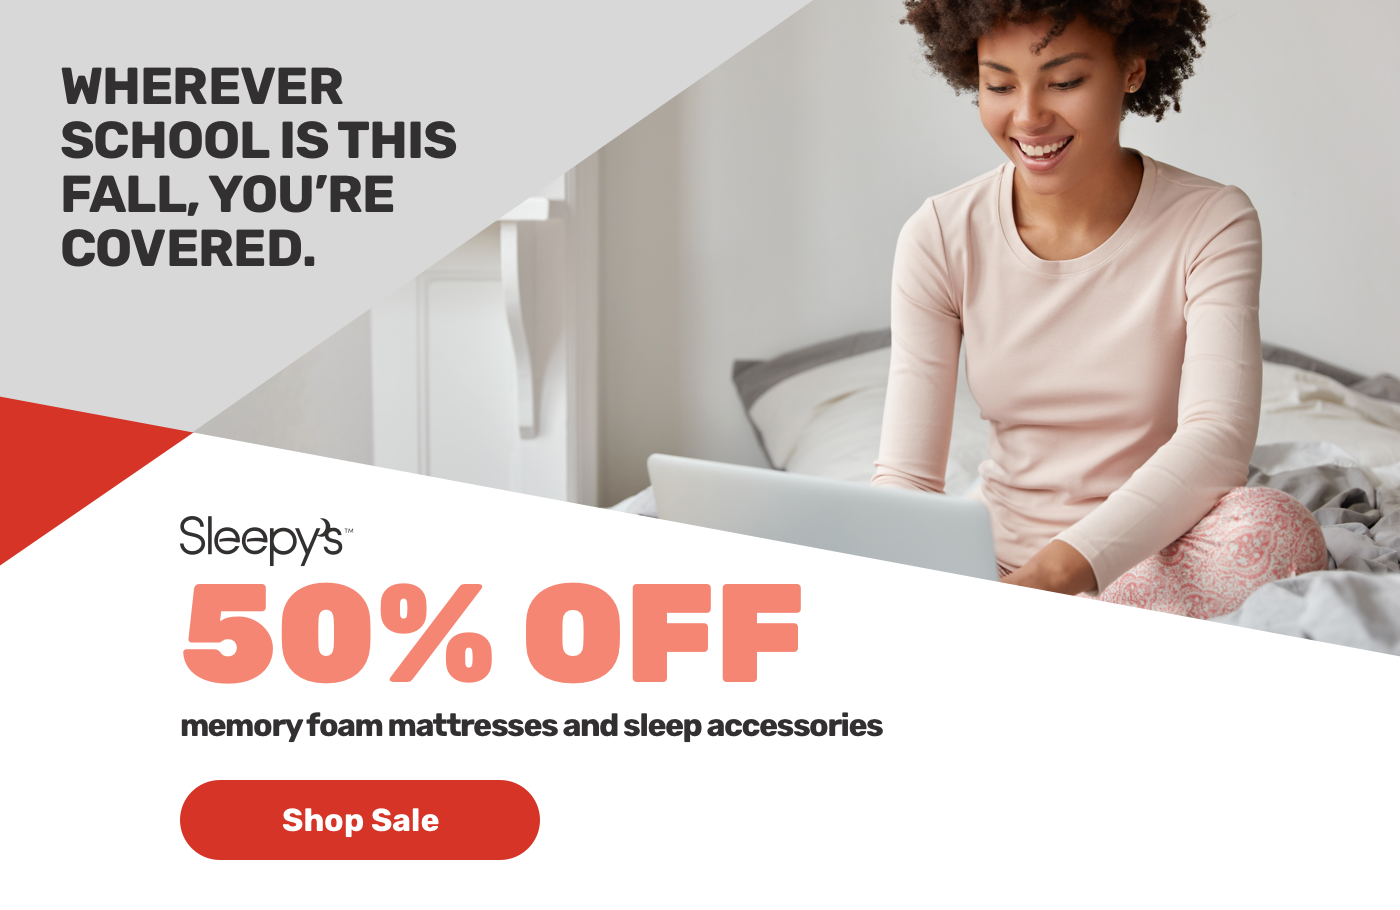 Wherever school is this fall, you're covered. Sleepy 50% OFF.memory foam mattresses and sleep accessories.Shop Sale.